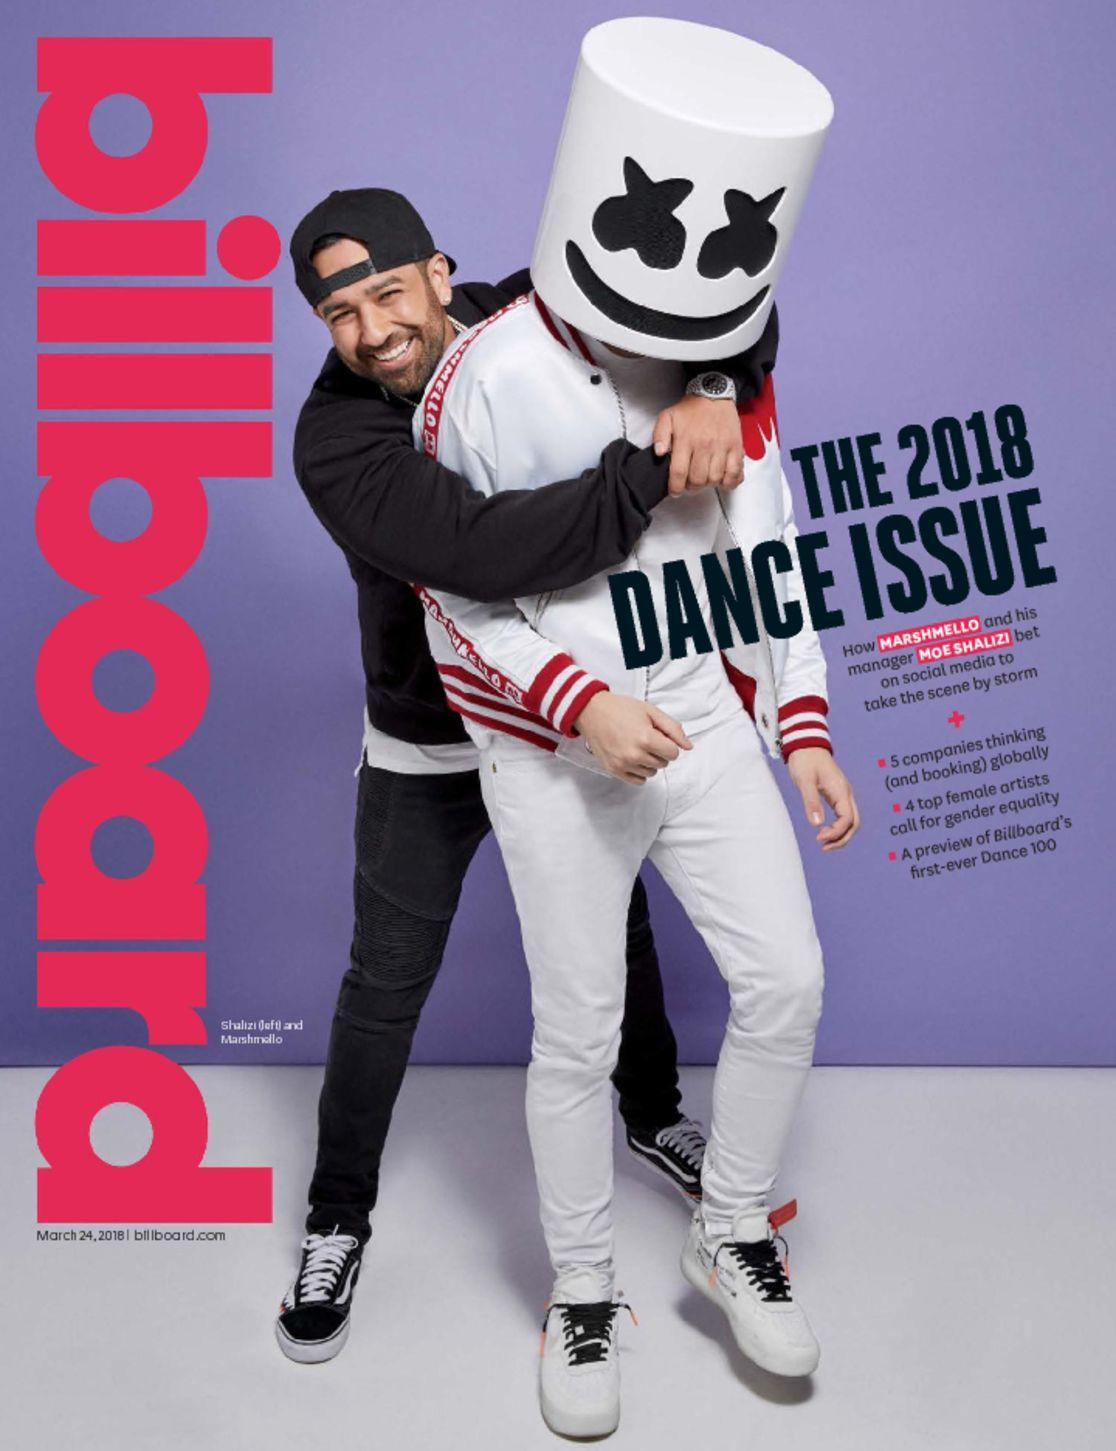 Exclusive Billboard Discount. Choose from Billboard's Print & Digital All Access or a Digital All Acces or a Print Only Subscription.